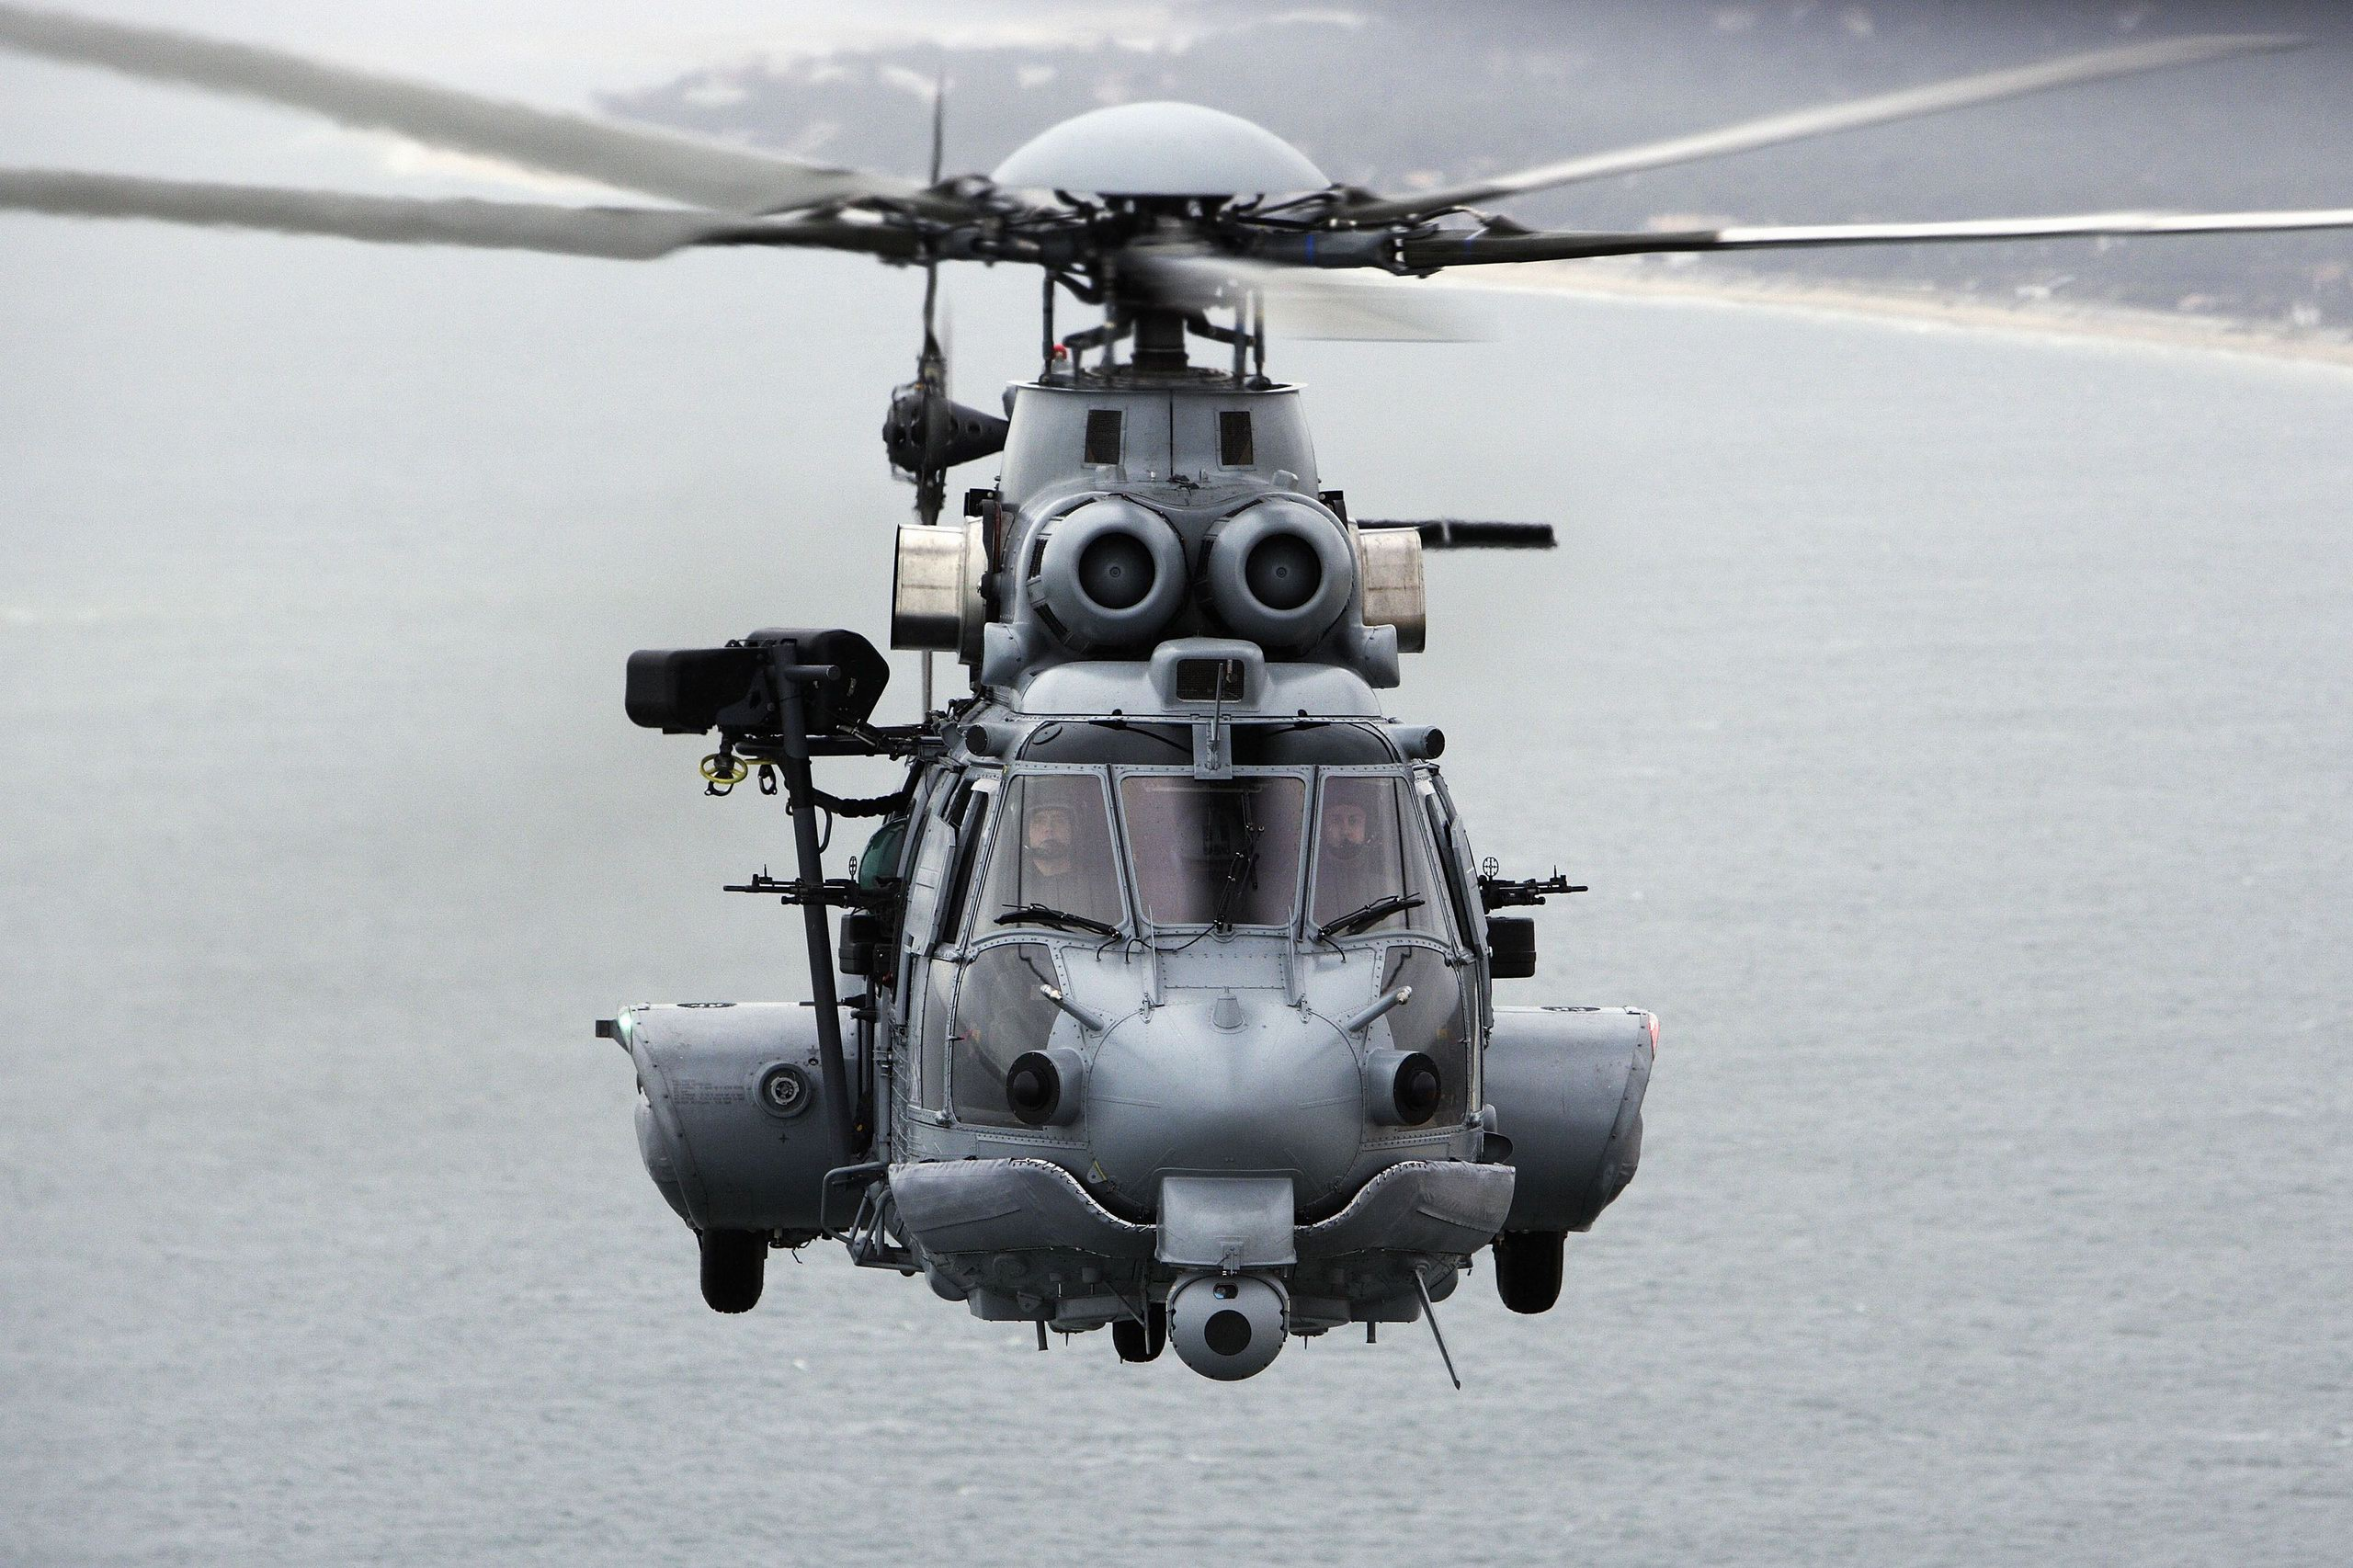 sea, helicopter, pilot